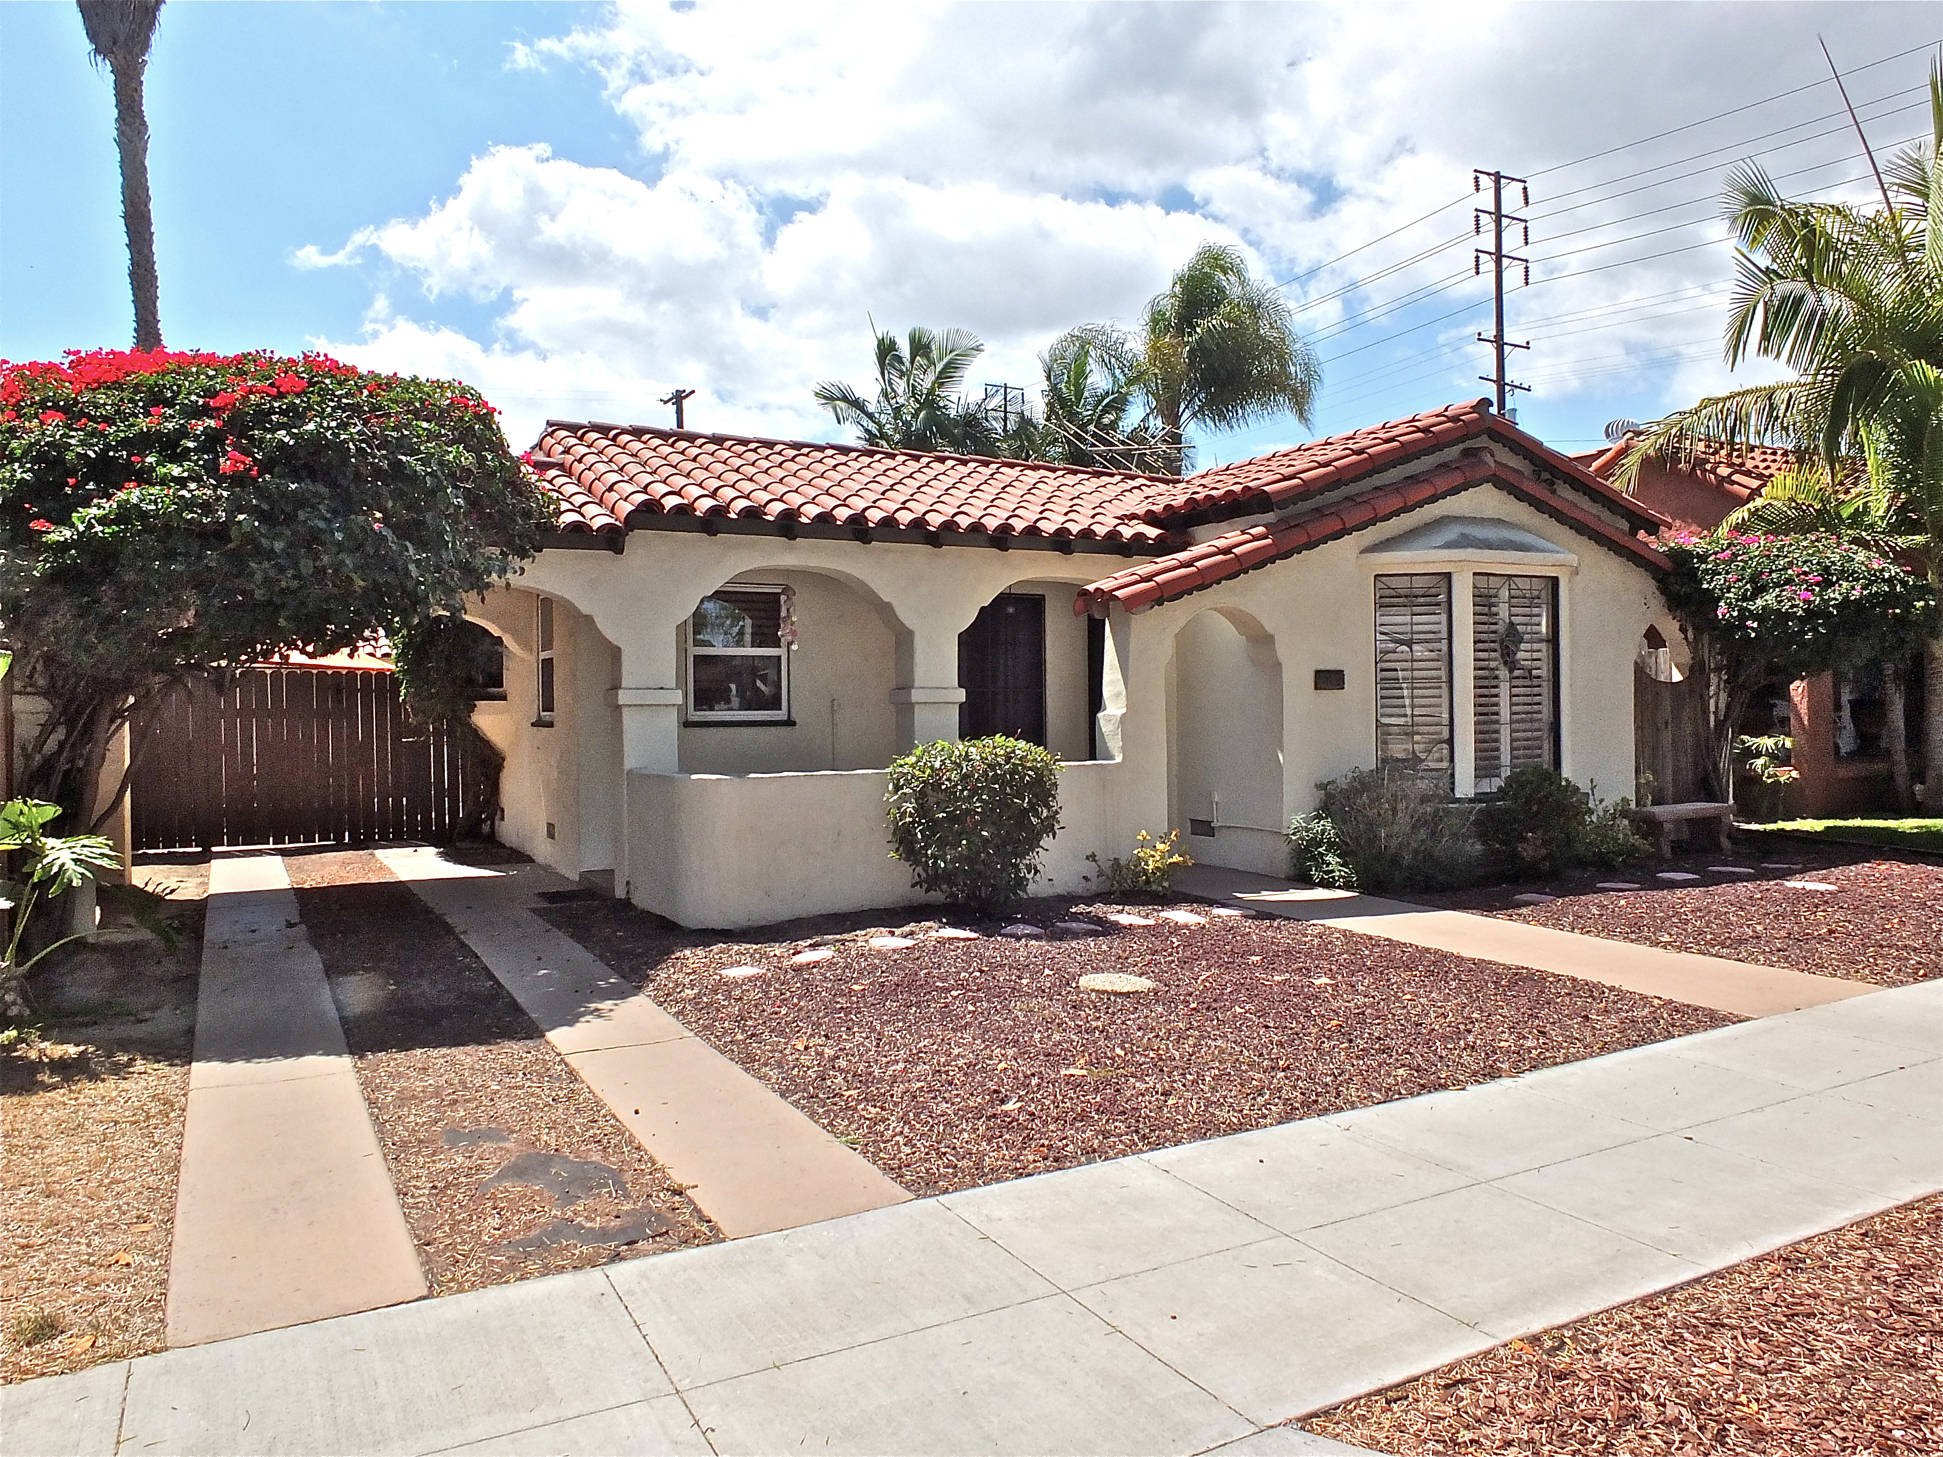 Uncategorized Images Of Spanish Style Homes 100 spanish style homes with interior courtyards classic beauty open house